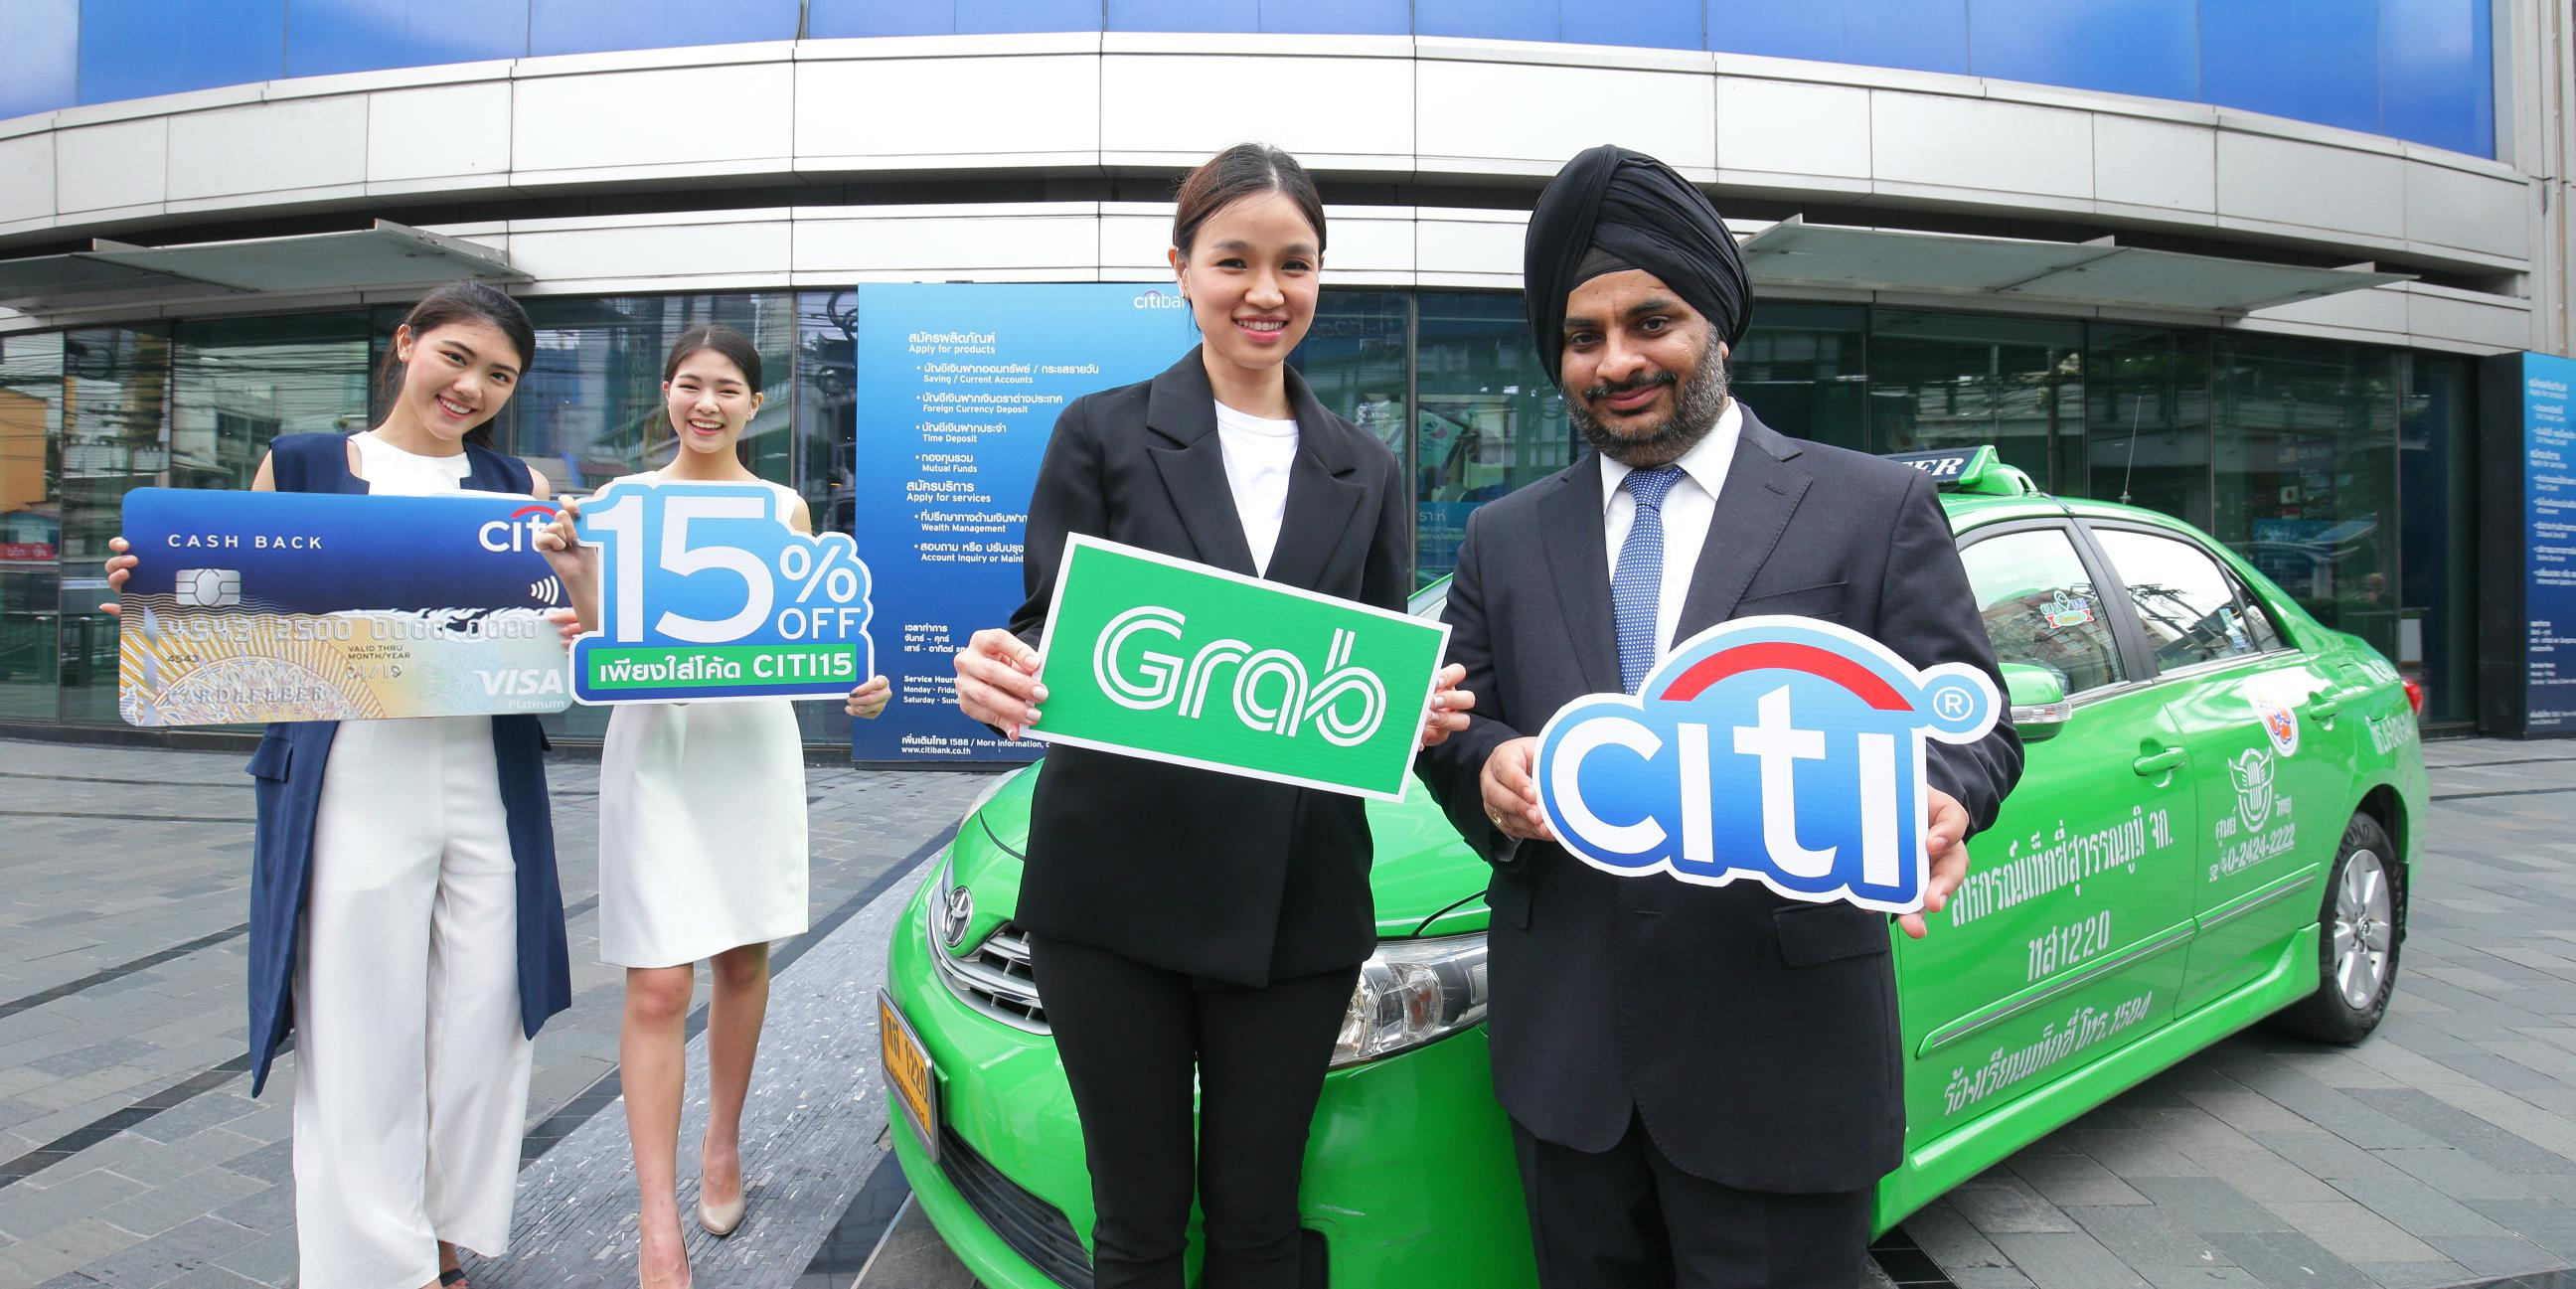 Grab Partners with Citi Credit Card to Launch Exclusive Promotion, Offering 15% Discount ...